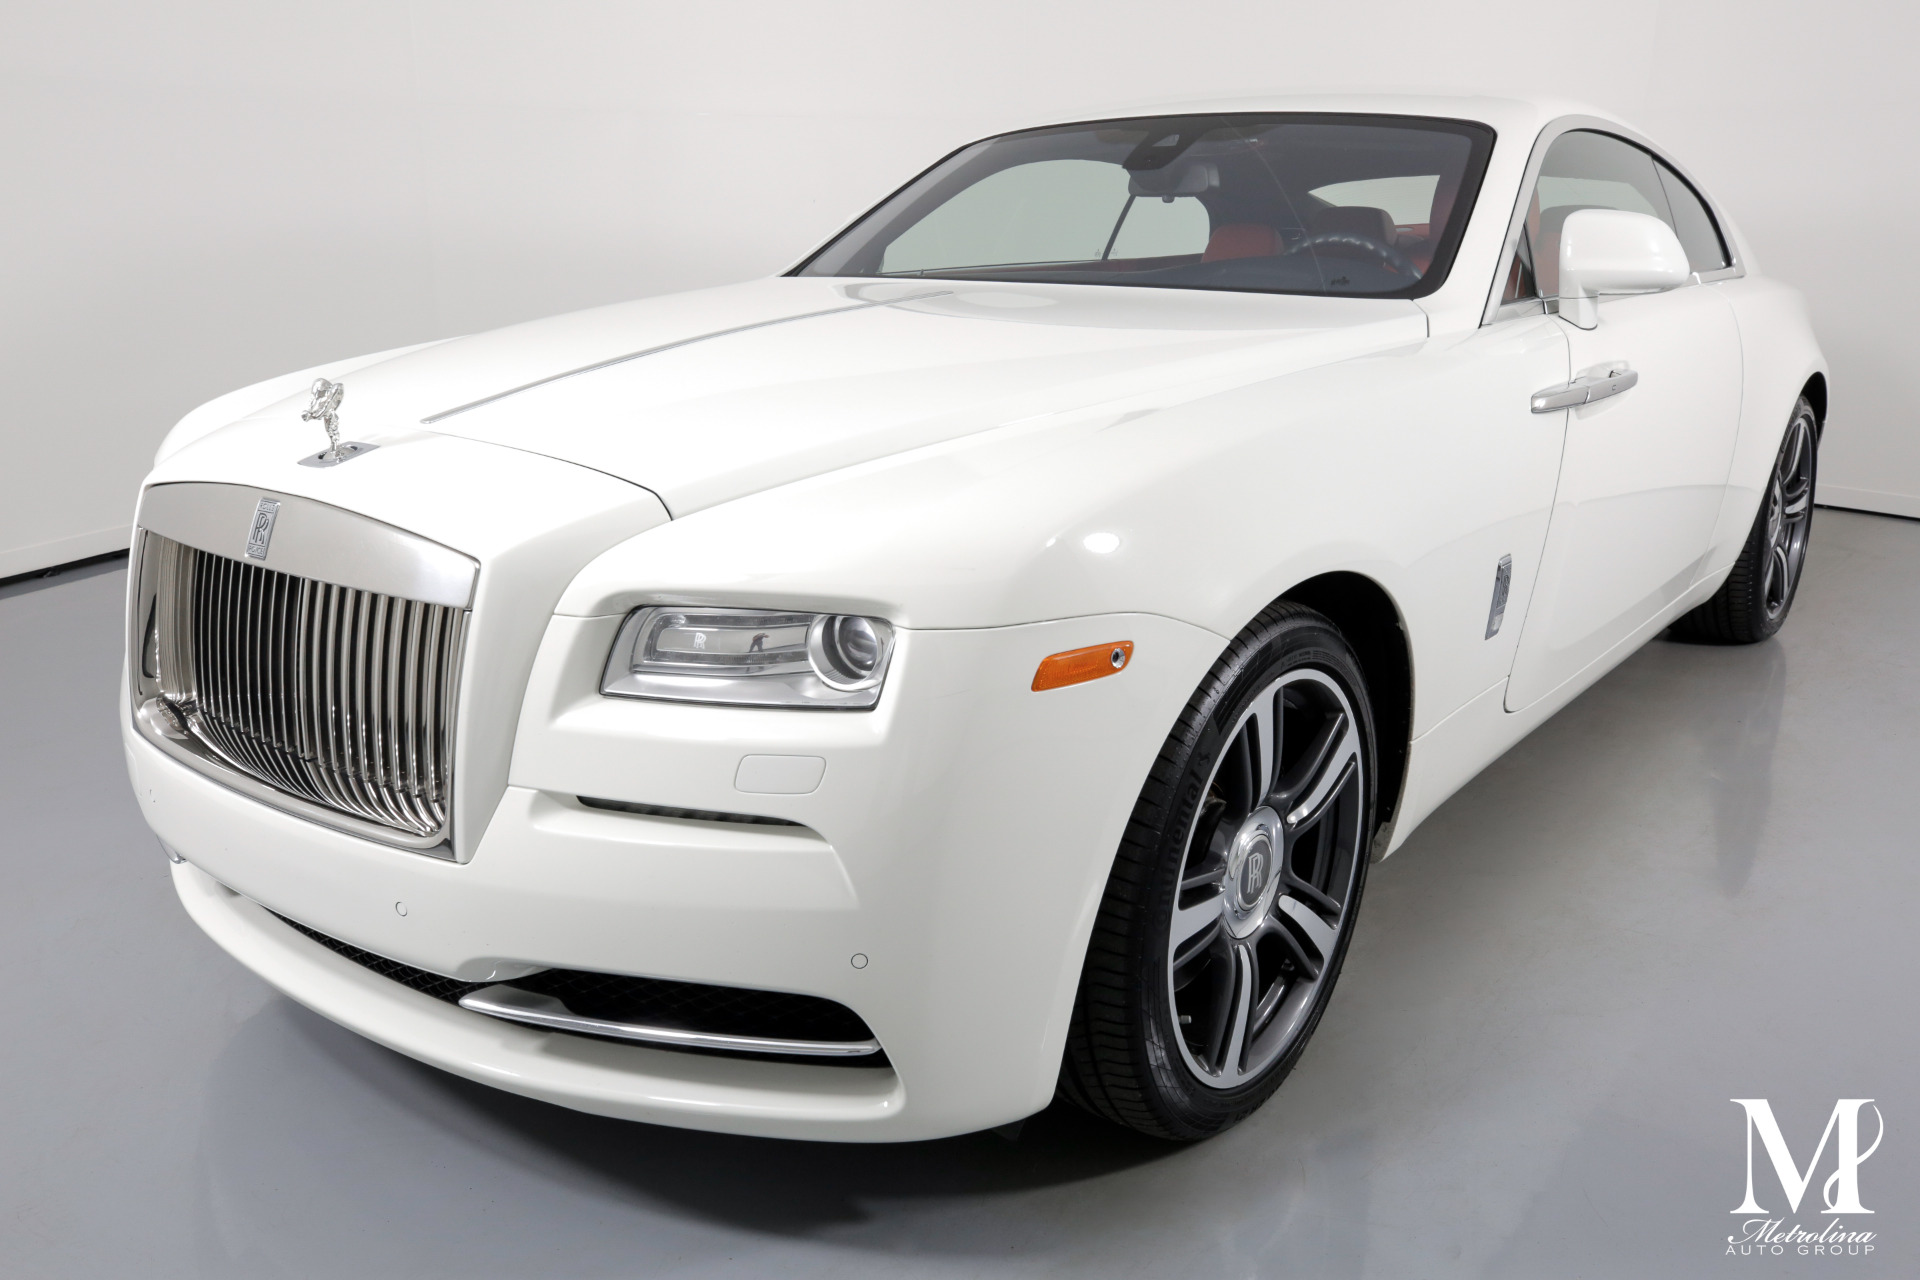 Used 2016 Rolls-Royce Wraith for sale $179,996 at Metrolina Auto Group in Charlotte NC 28217 - 4